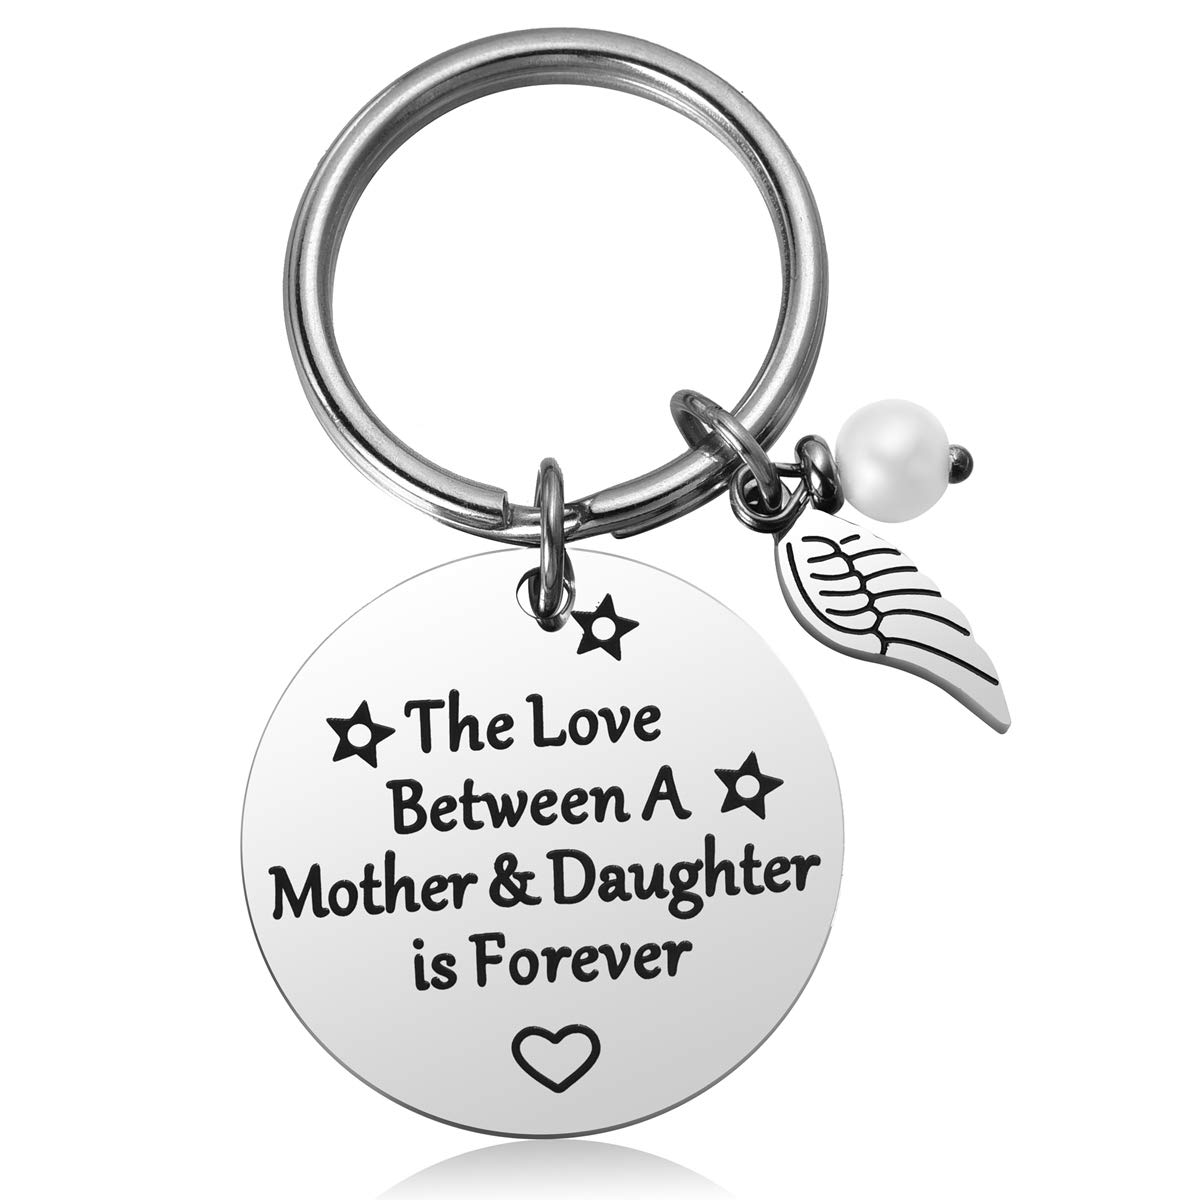 Office Products Office Supplies The Love Between a Mother and ...